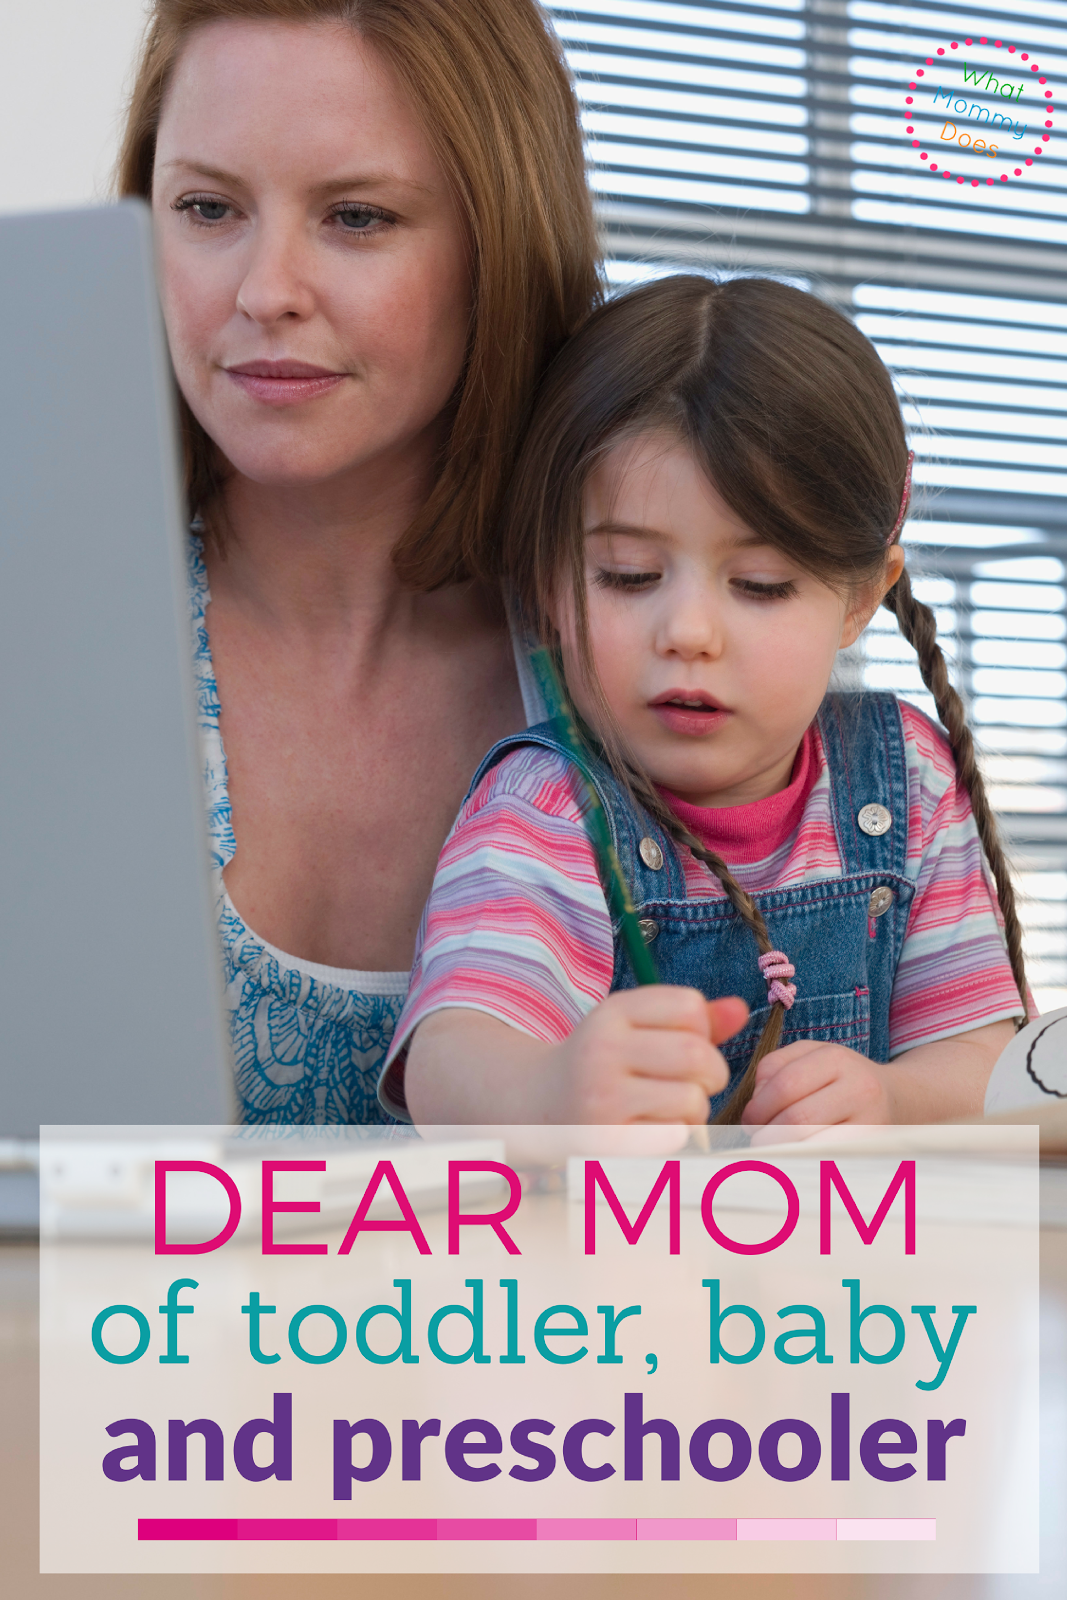 This Dear Mom Letter is as heartfelt as it is encouraging. Sometimes, strong mothers need the inspiration from others to continue doing what they do!